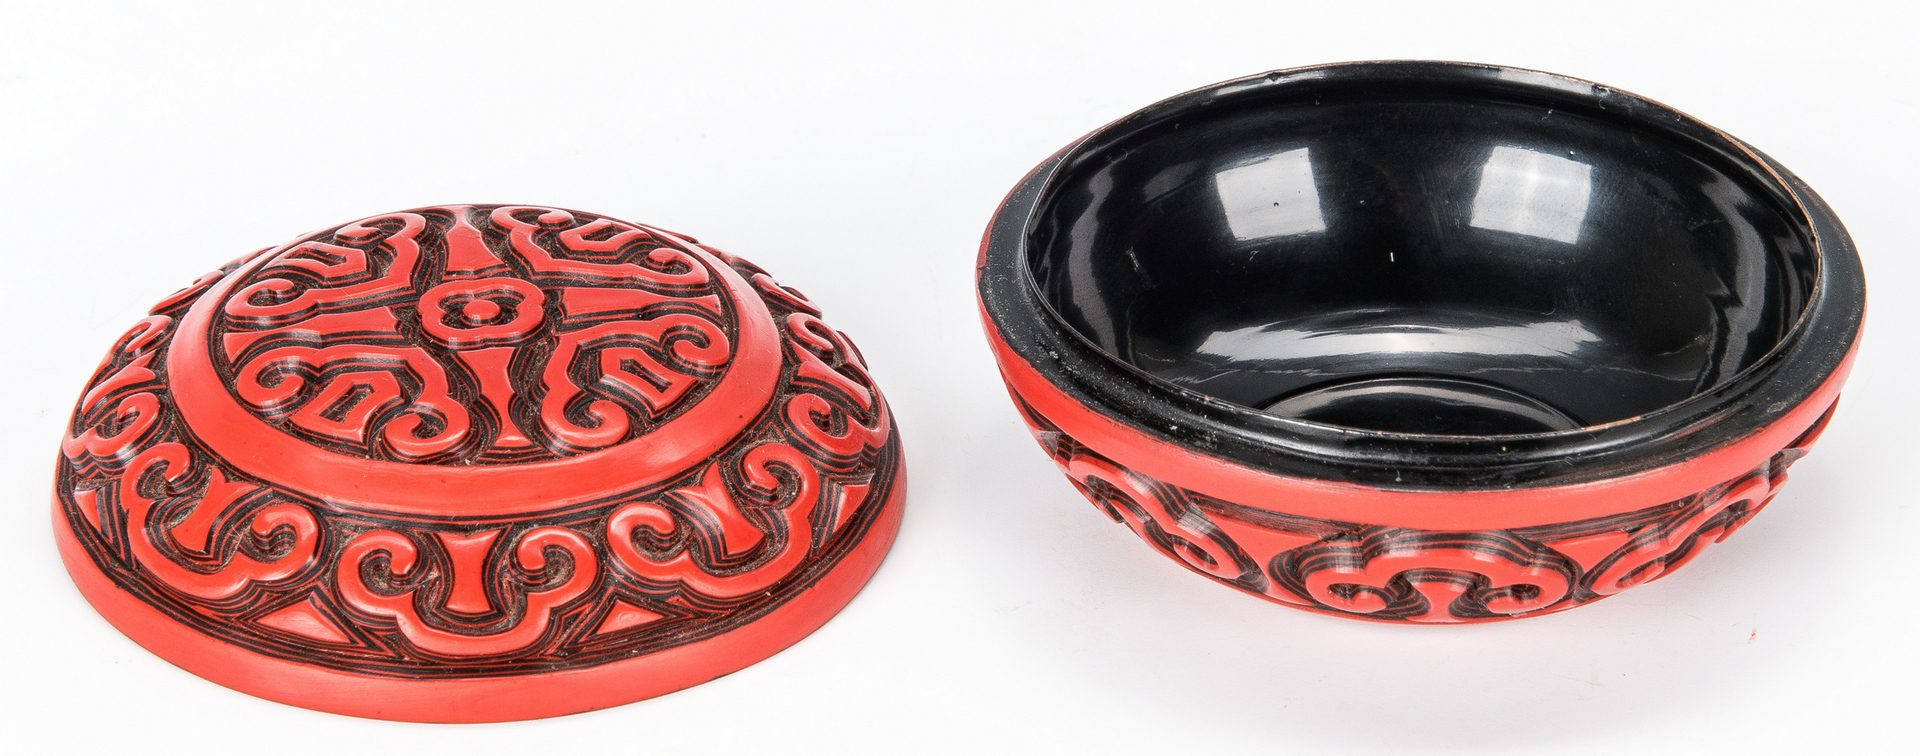 Lot 447: 3 Chinese lacquer items